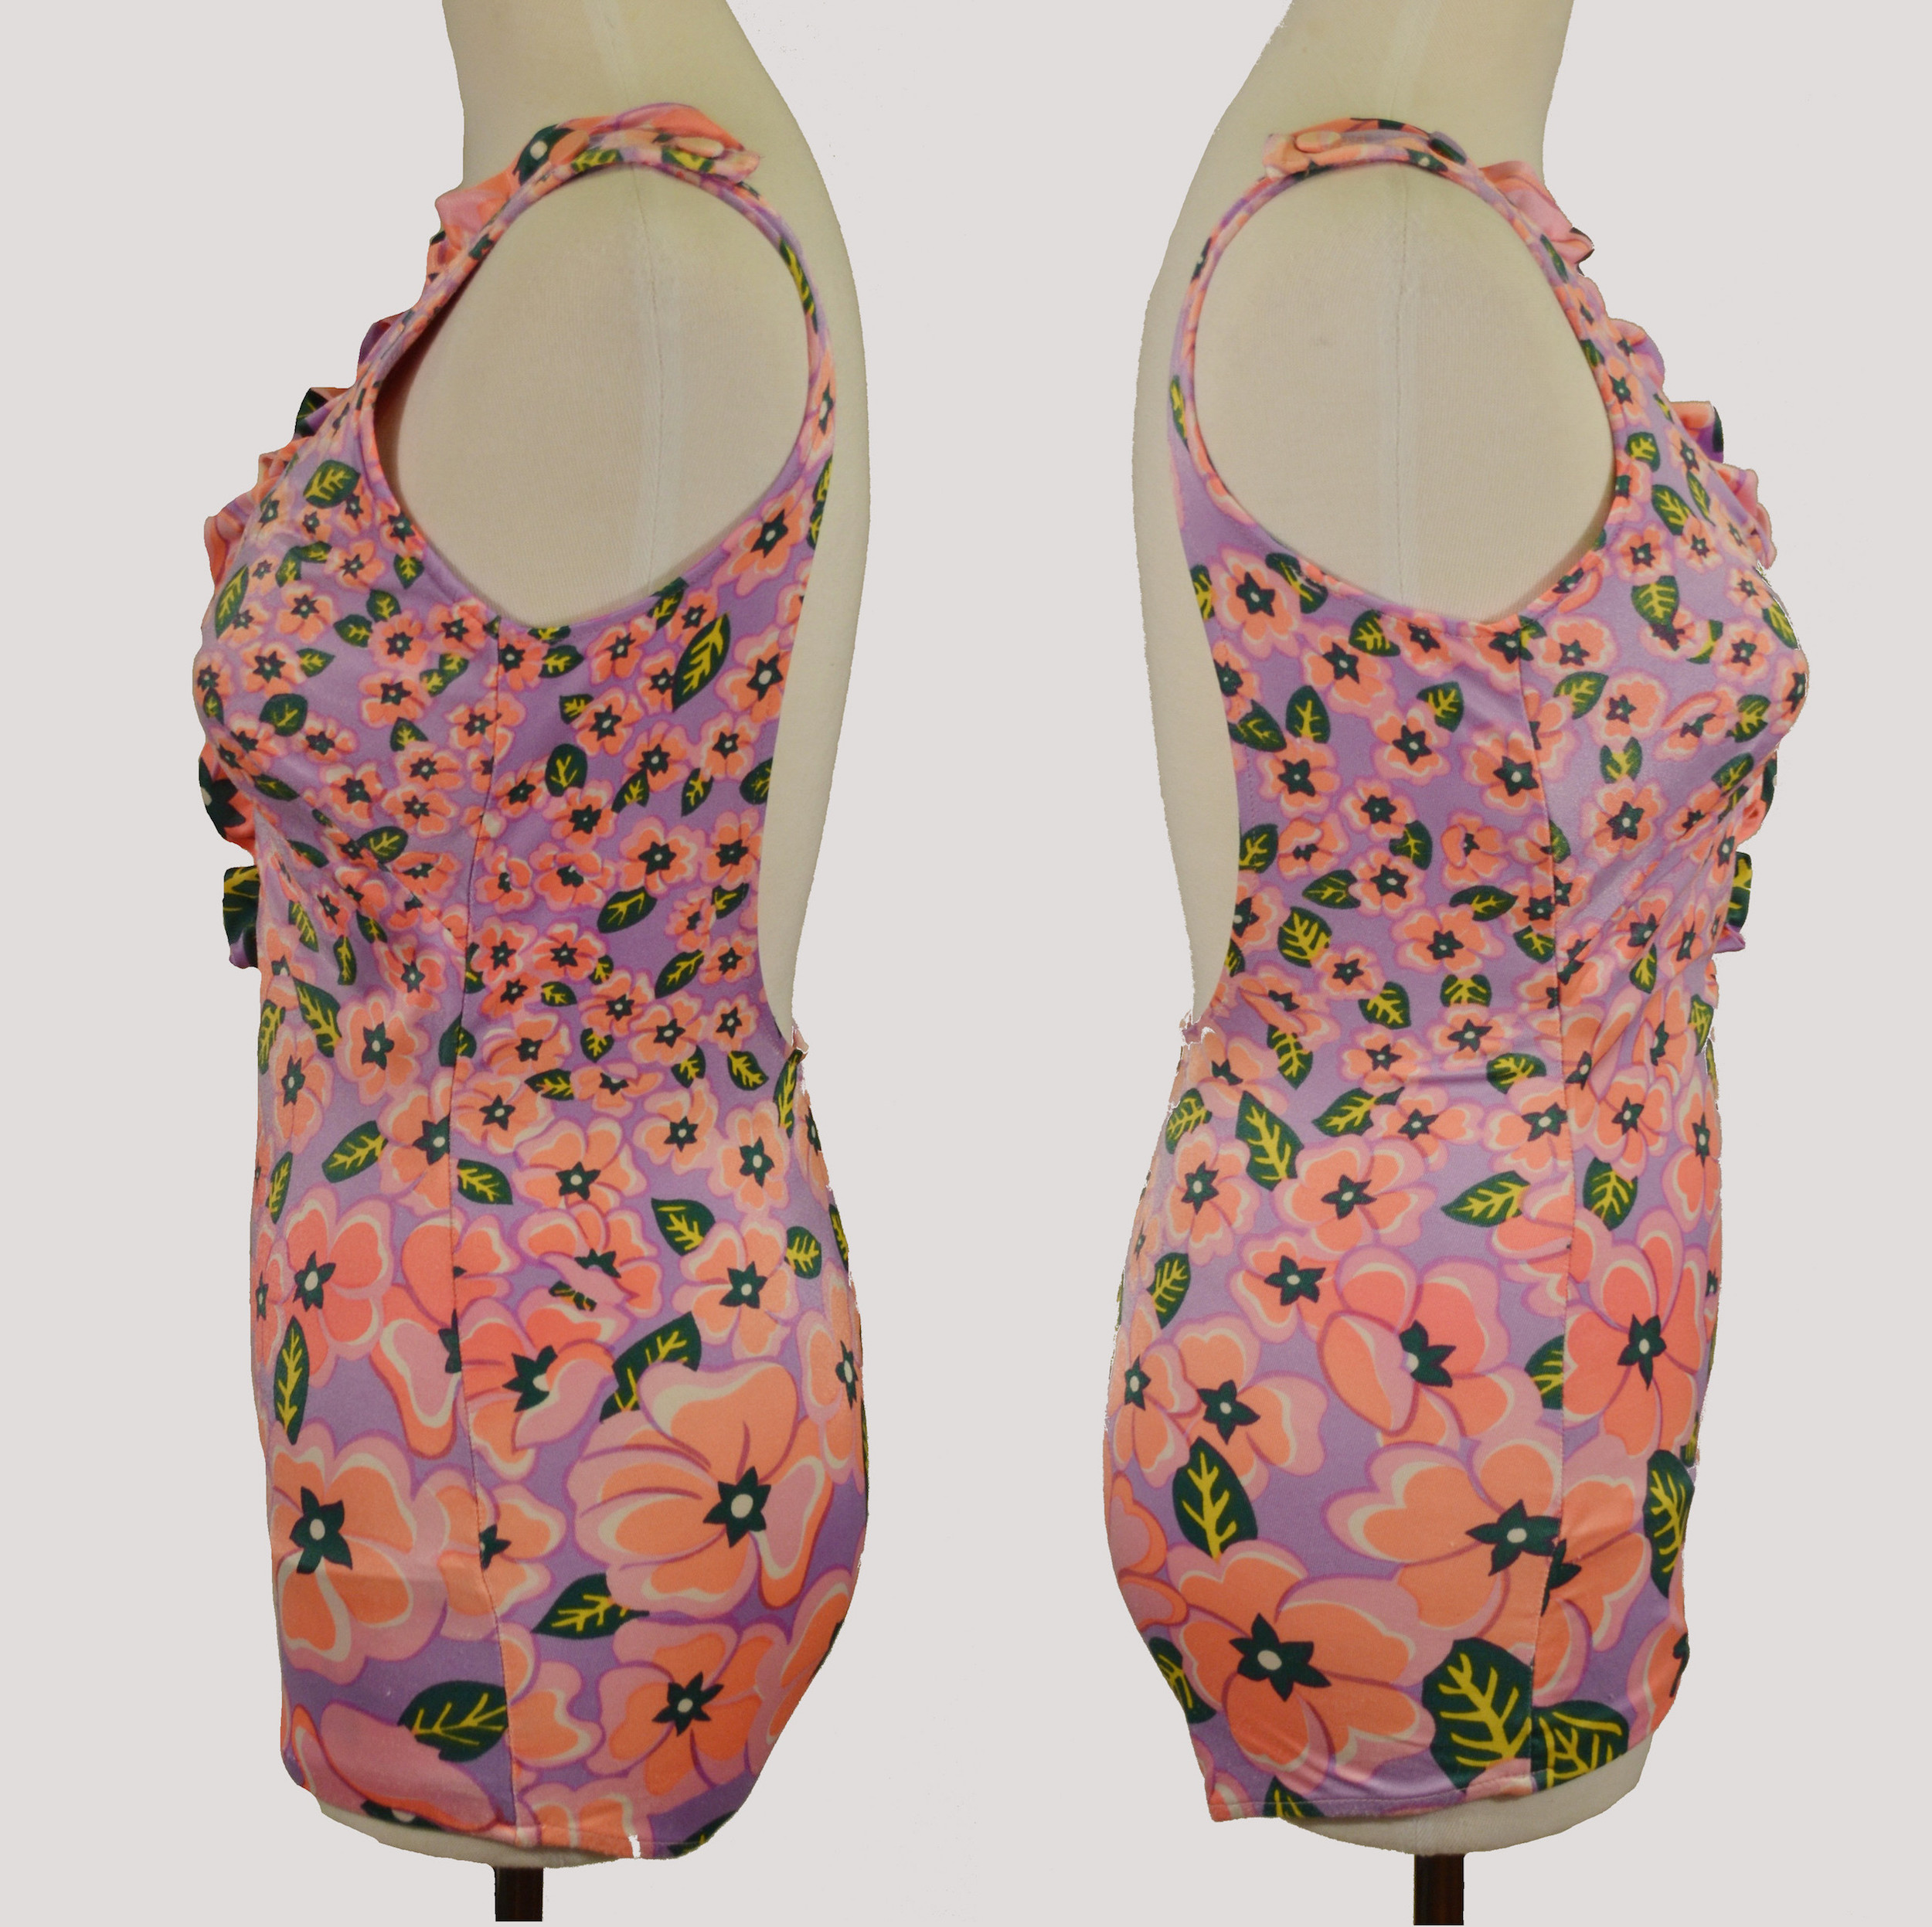 The Gidget Floral Bather